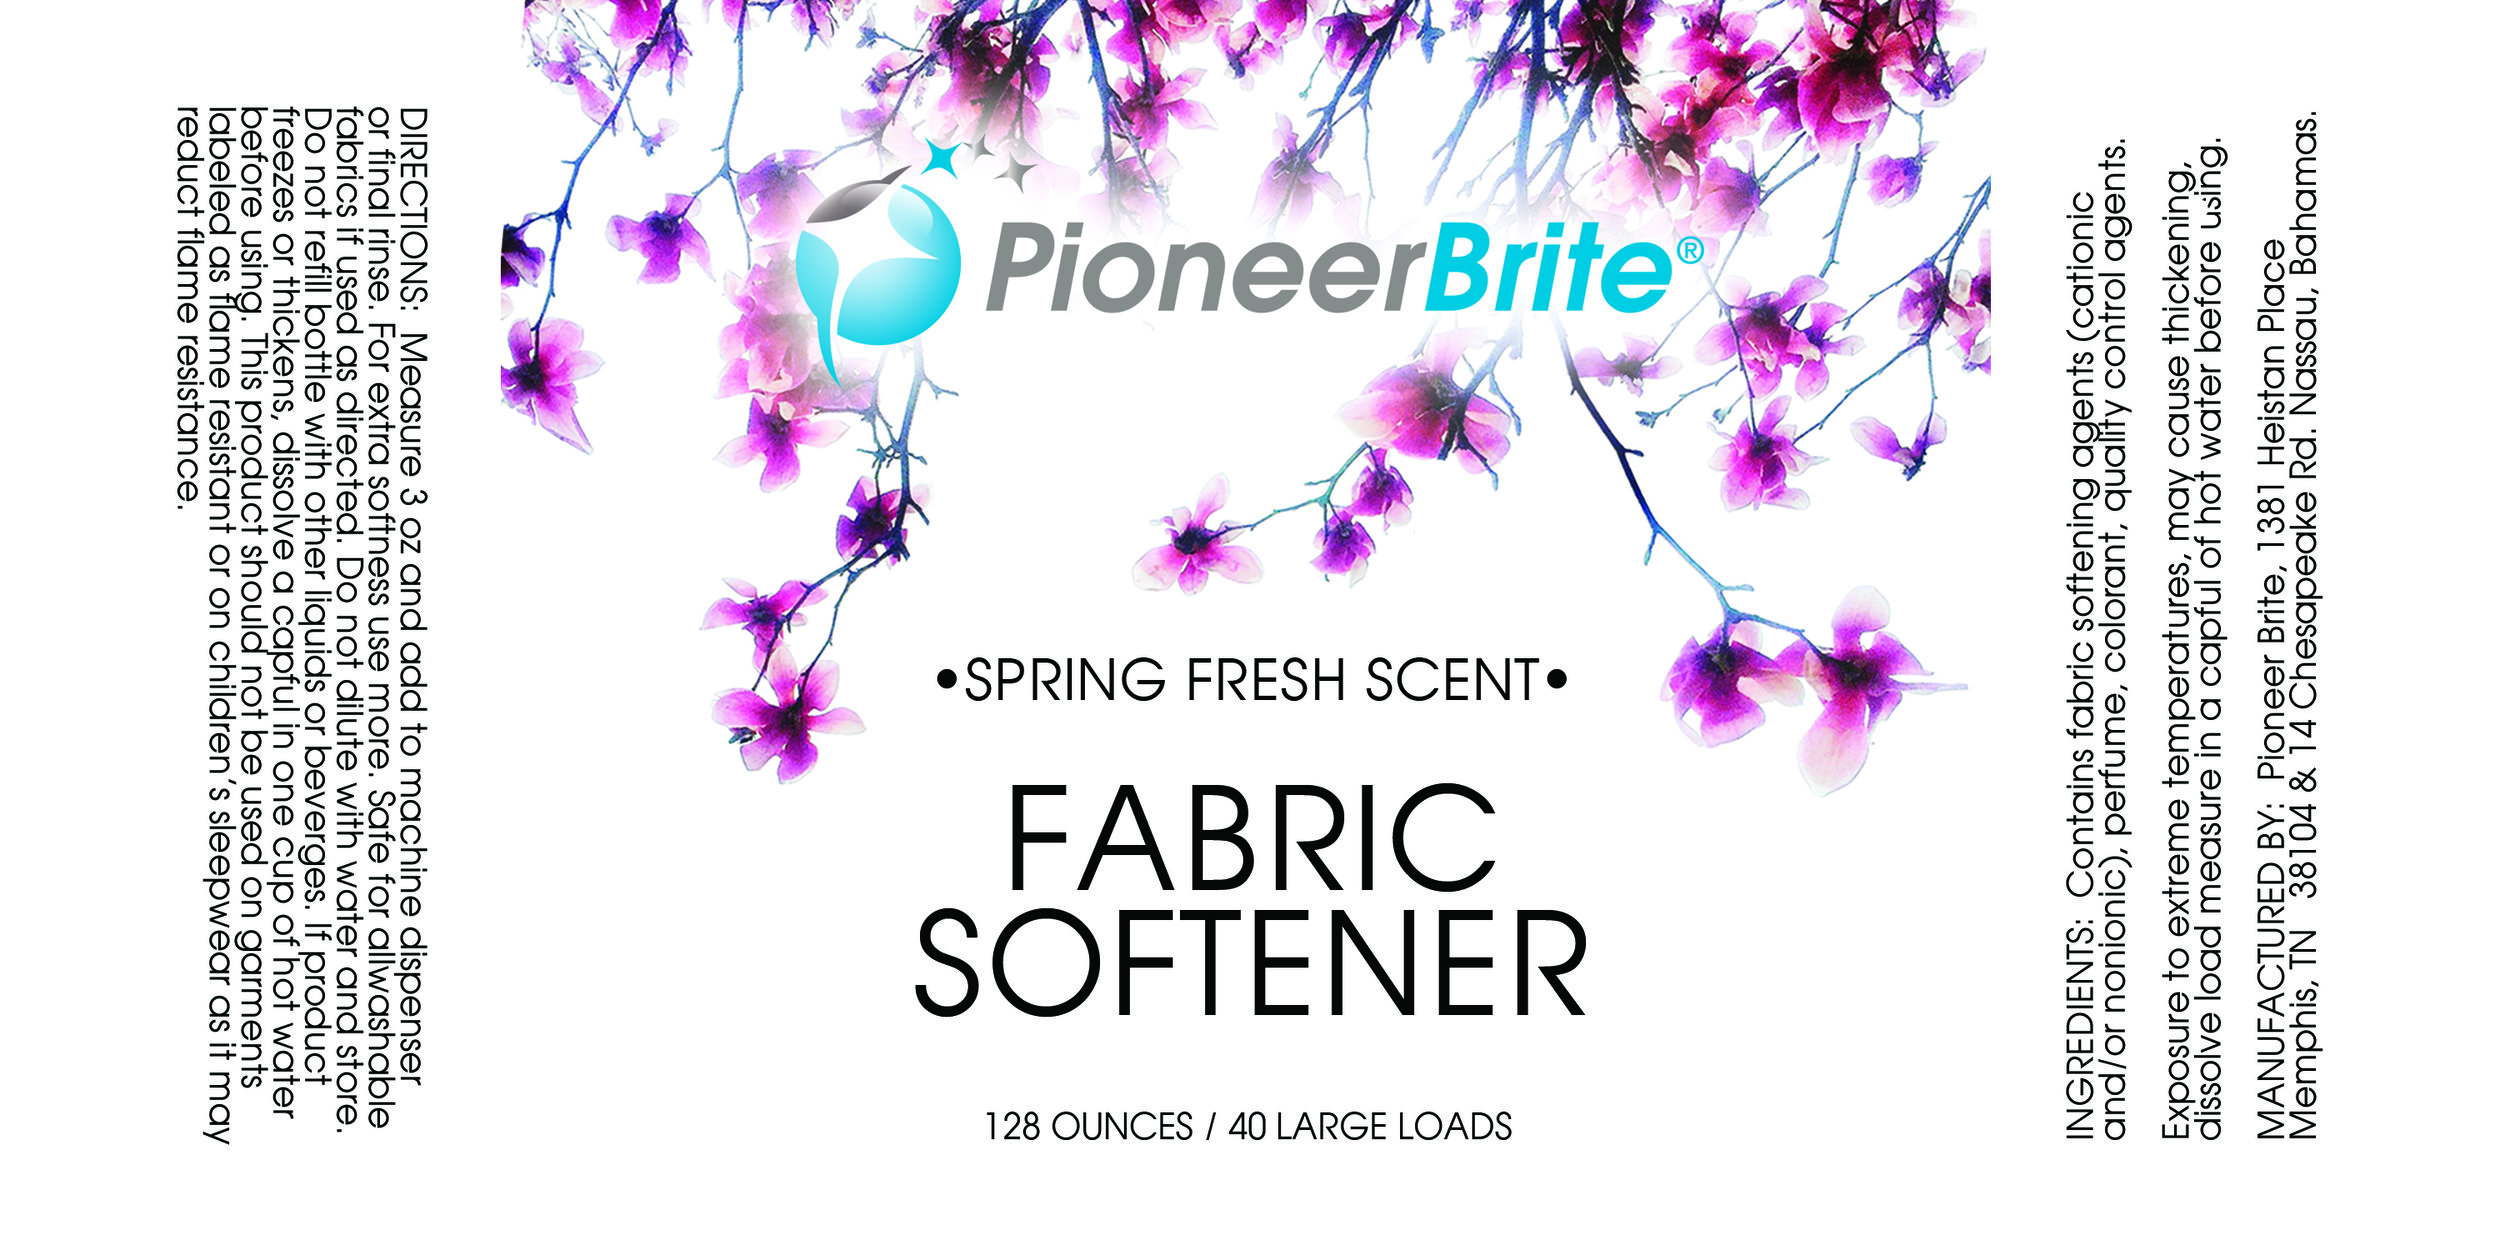 Pioneer Brite | Product label - Original photography